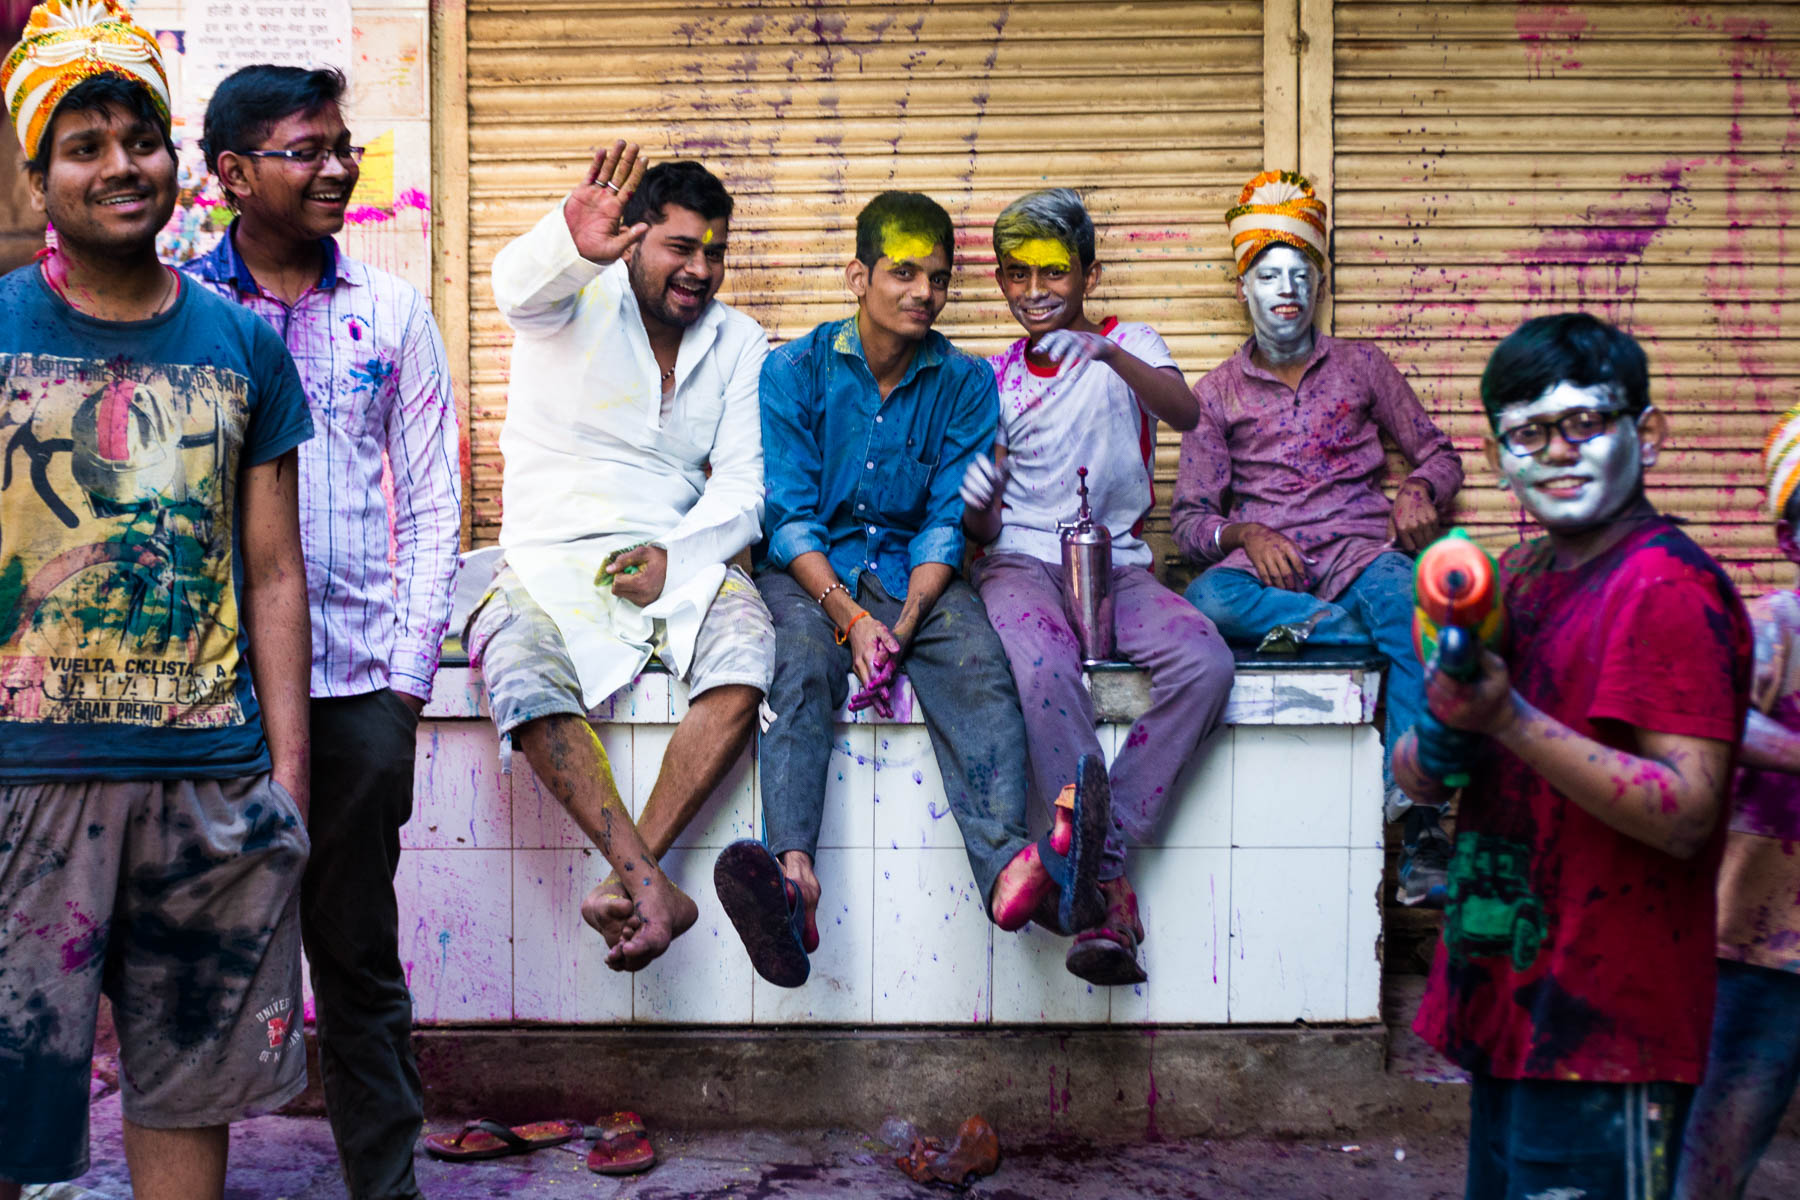 Celebrating Holi as a Woman in Varanasi - Friendly men on the streets during Holi - Lost With Purpose